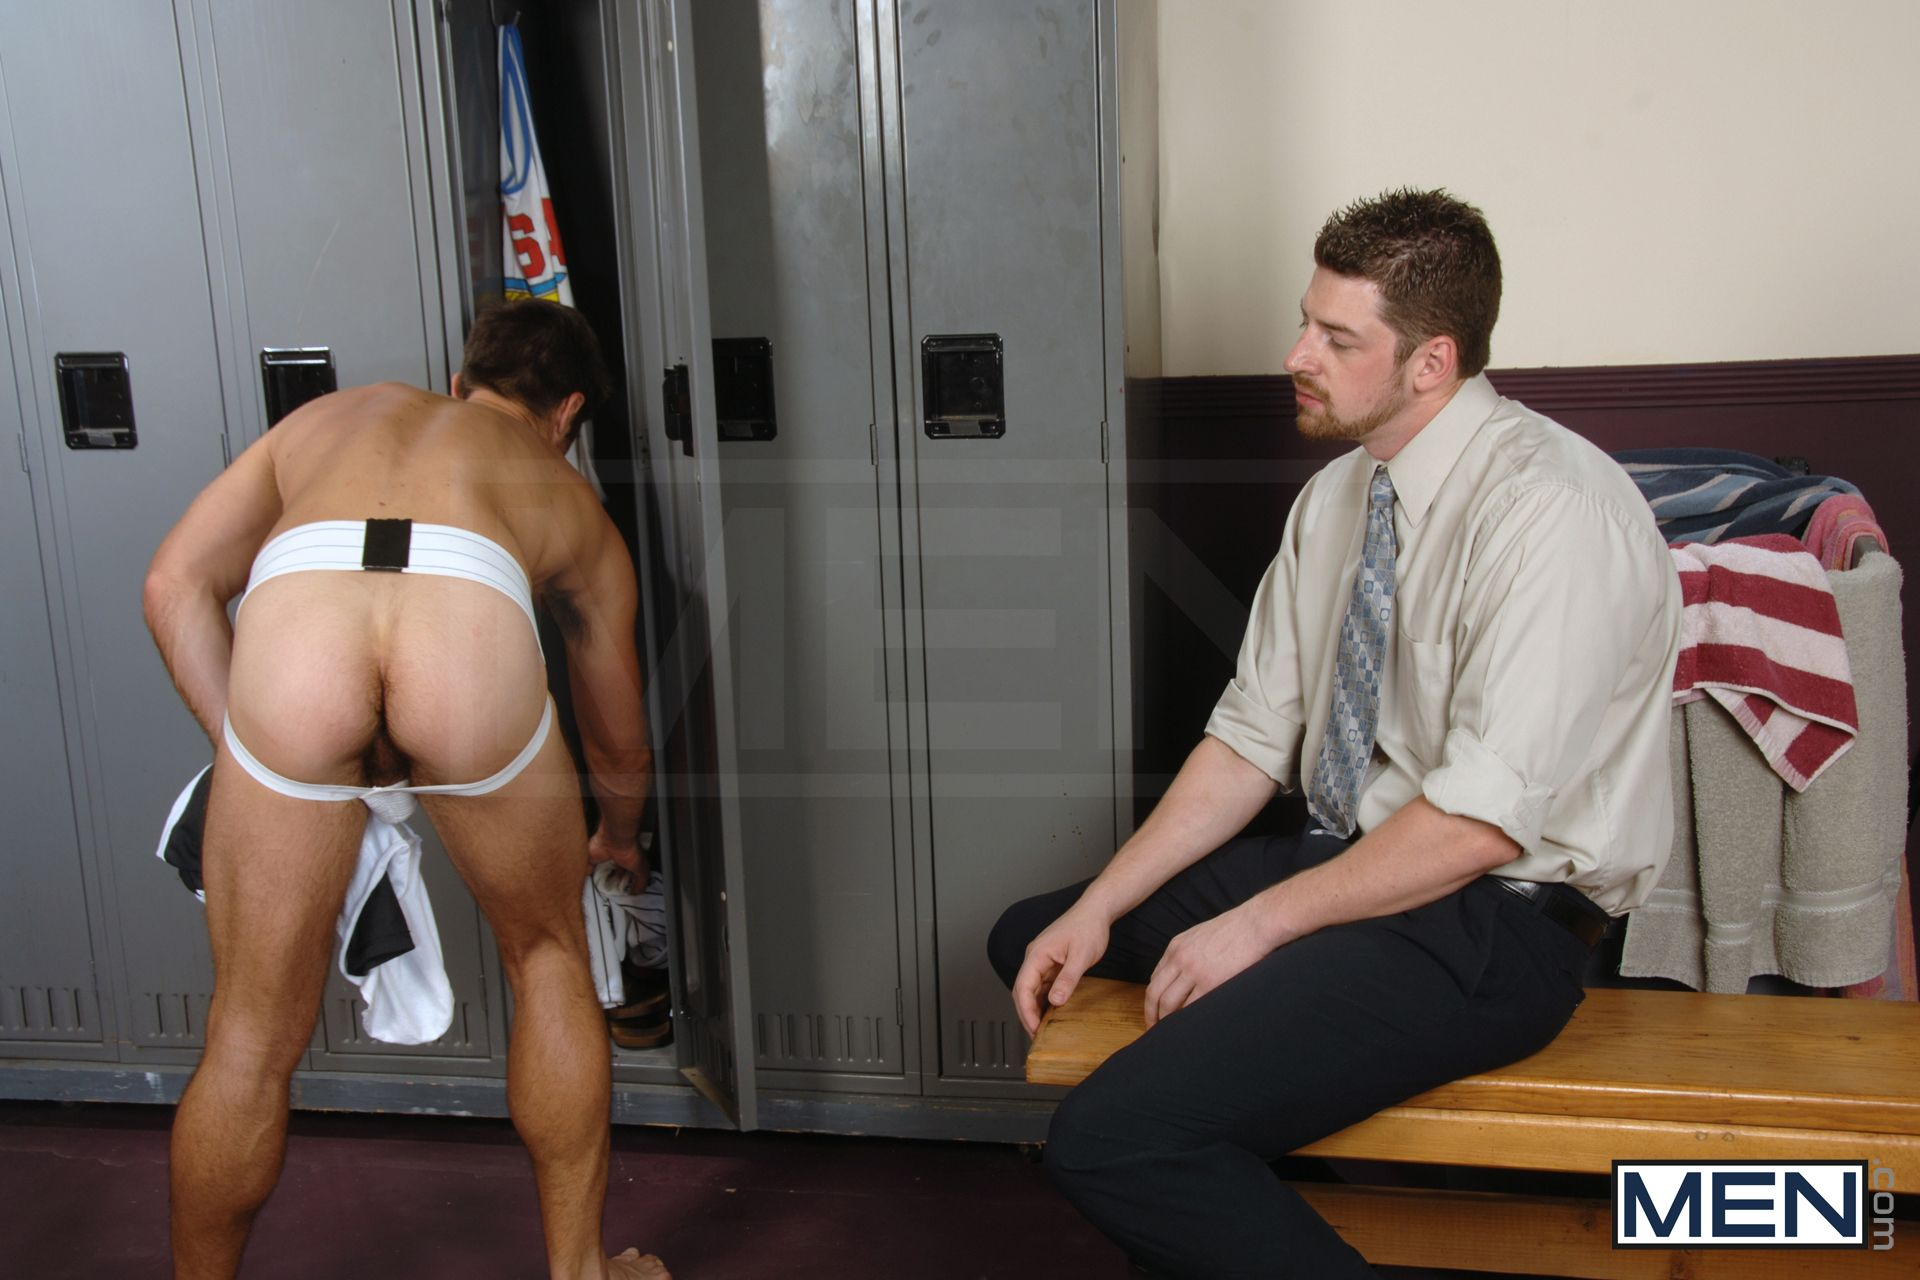 image Subjected to a gangbang with 3 men